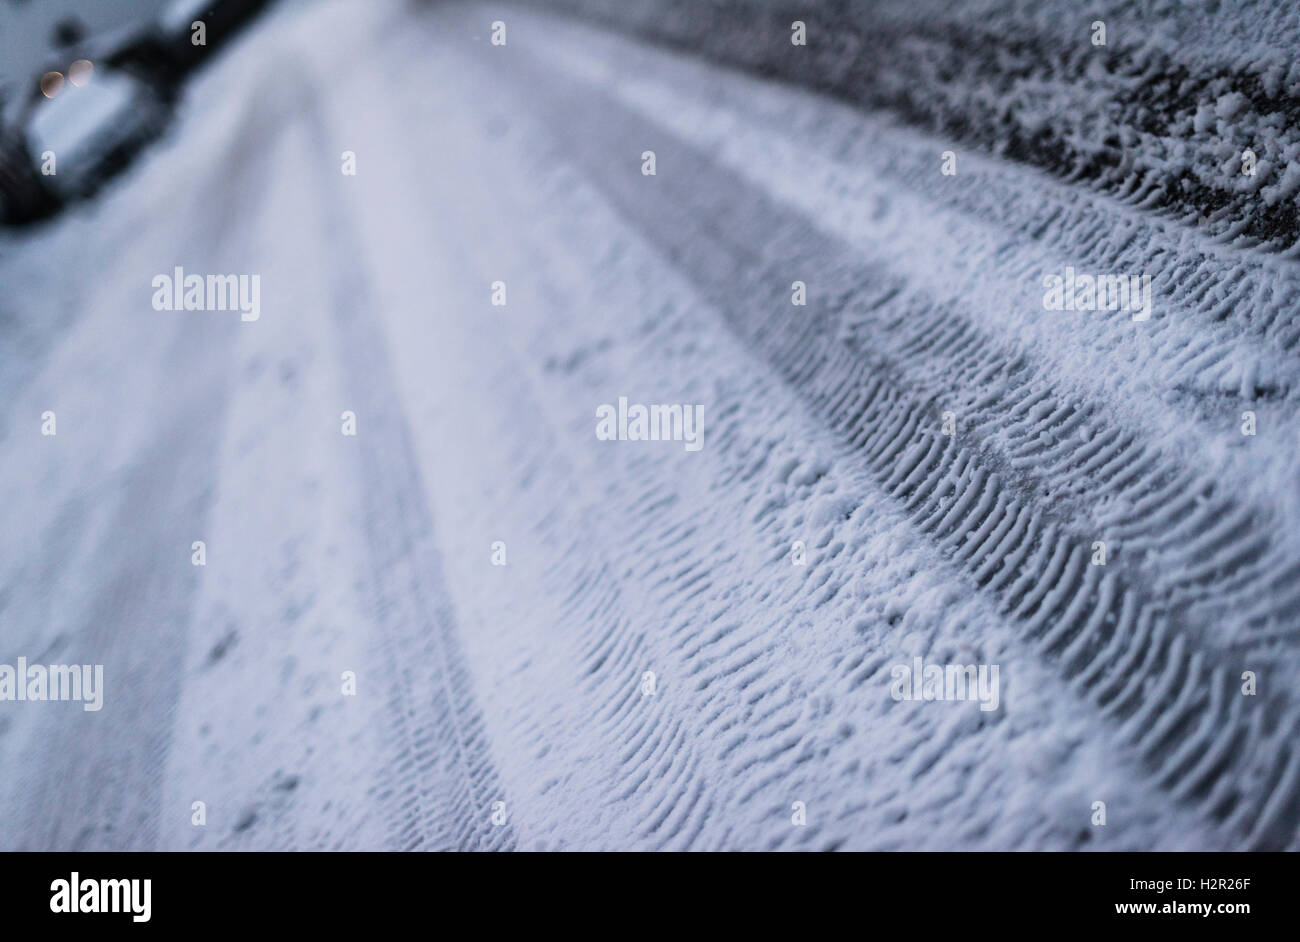 Tracks of car tires on a snow covered, glazed, icy street during a cold winter night Stock Photo